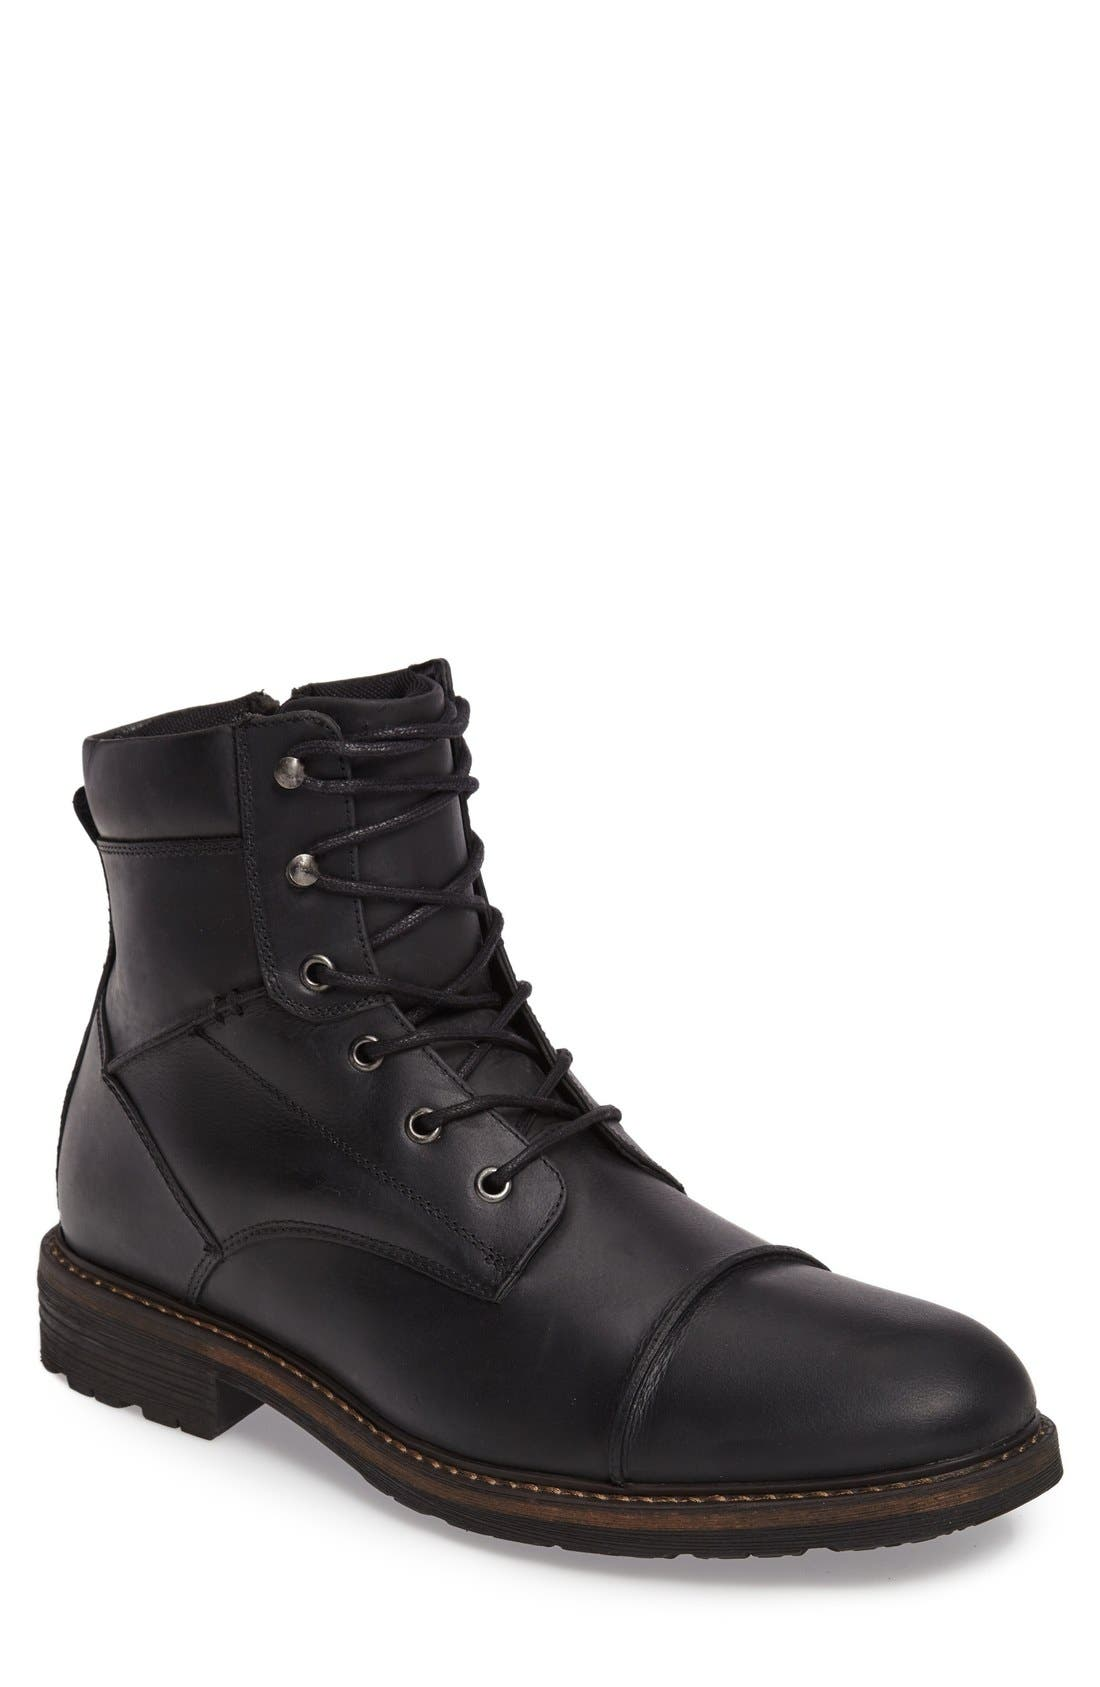 Derek Cap Toe Boot,                             Main thumbnail 1, color,